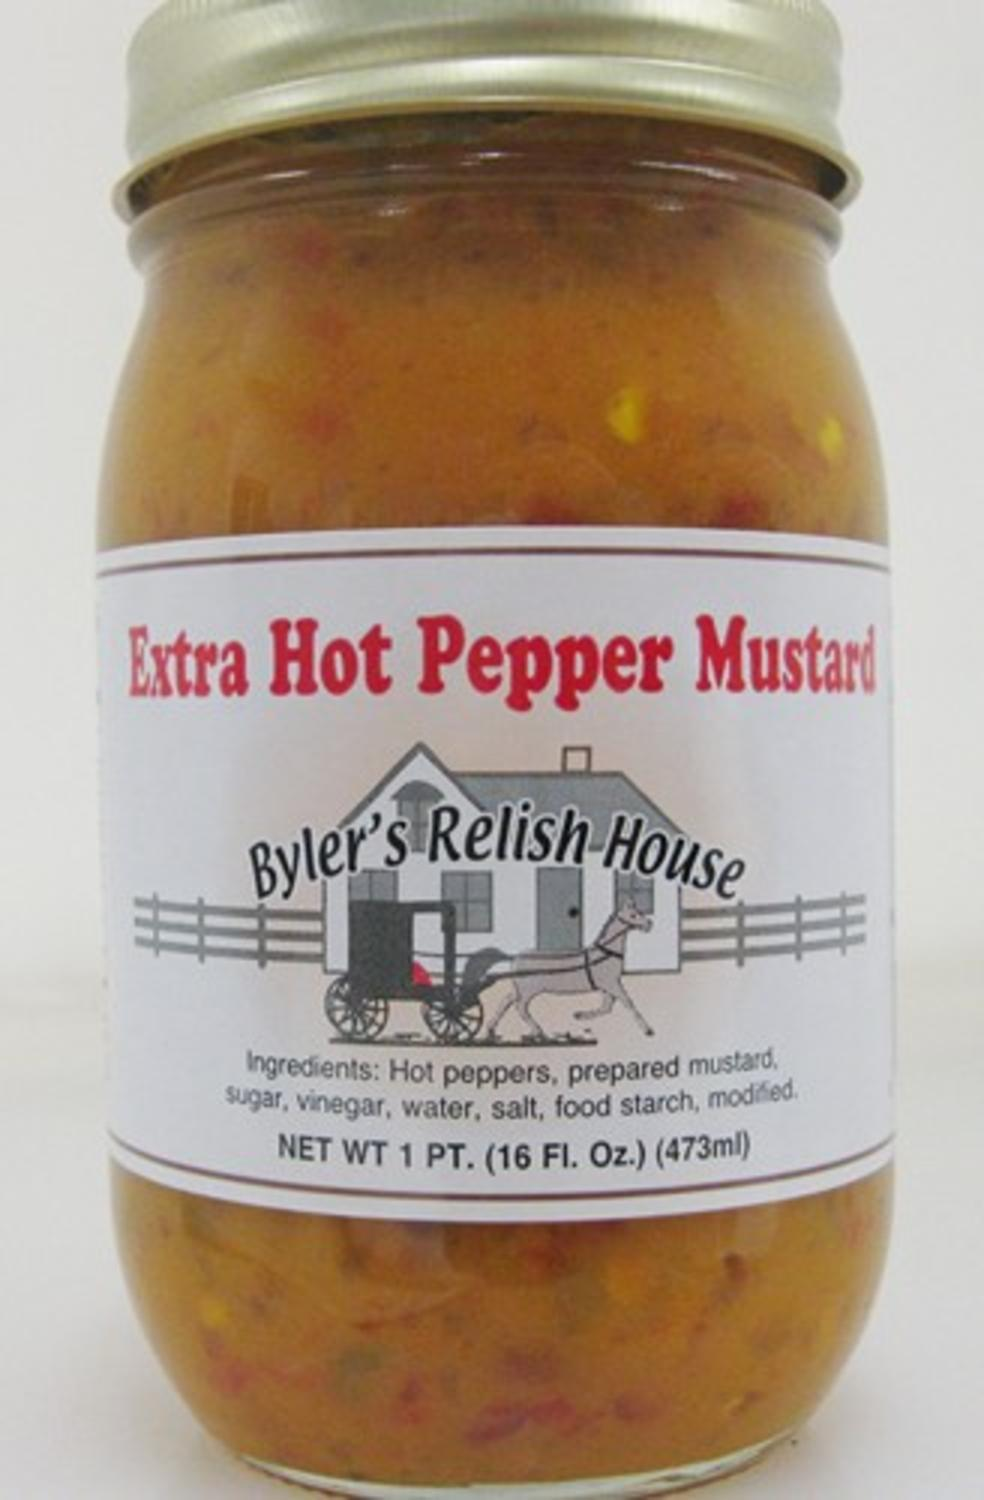 Byler's Relish House Homemade Amish Country Extra Hot Pepper Mustard 16 oz. by Byler's Relish House